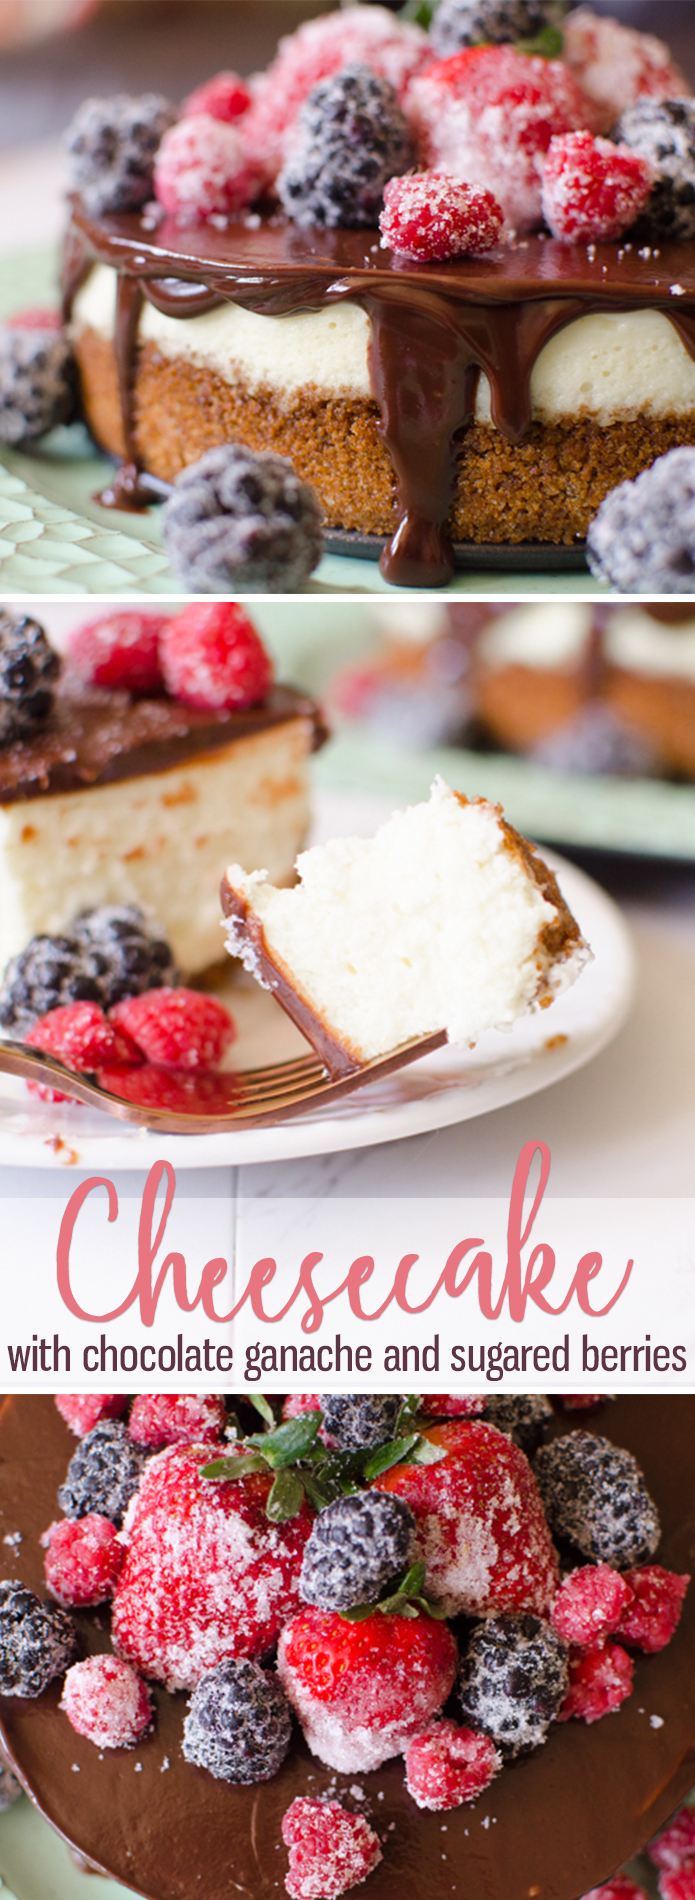 Cheesecake with Berries & Chocolate Ganache is a creamy, homemade, six-inch cheesecake topped with a rich chocolate ganache. The Cheesecake is garnished with sugared berries that give this classic dessert a bright, fresh flavor.#Cheesecake with #Berries and #Ganache from Butter With A Side of Bread #dessert #homemade #howtomakecheesecake #food #recipe